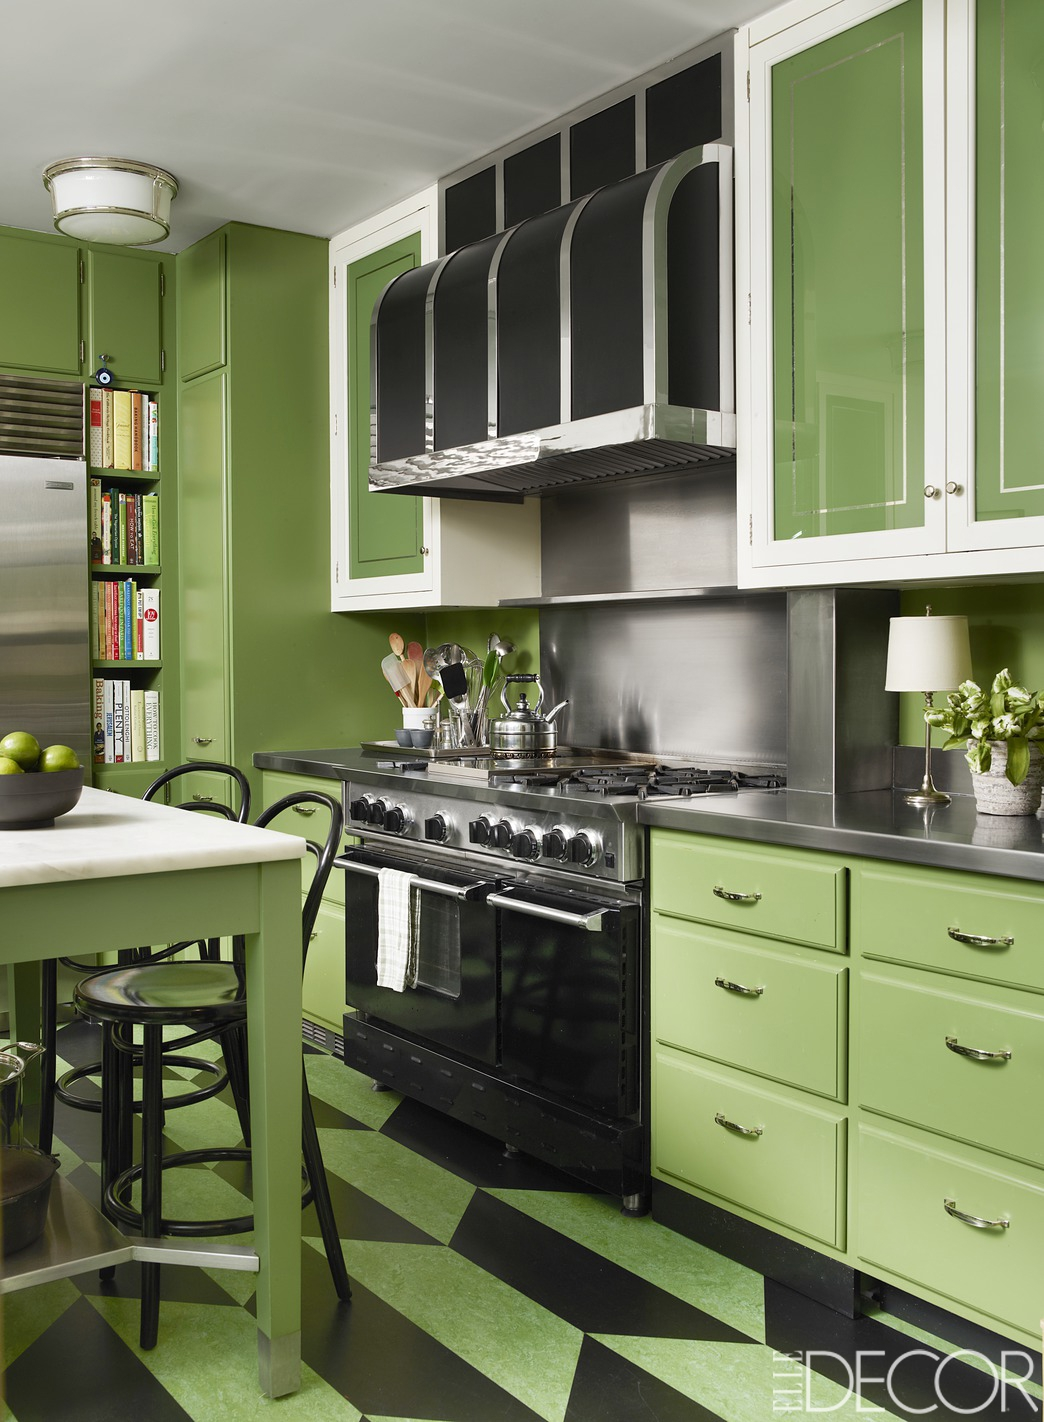 Decorating Ideas For Small Kitchens